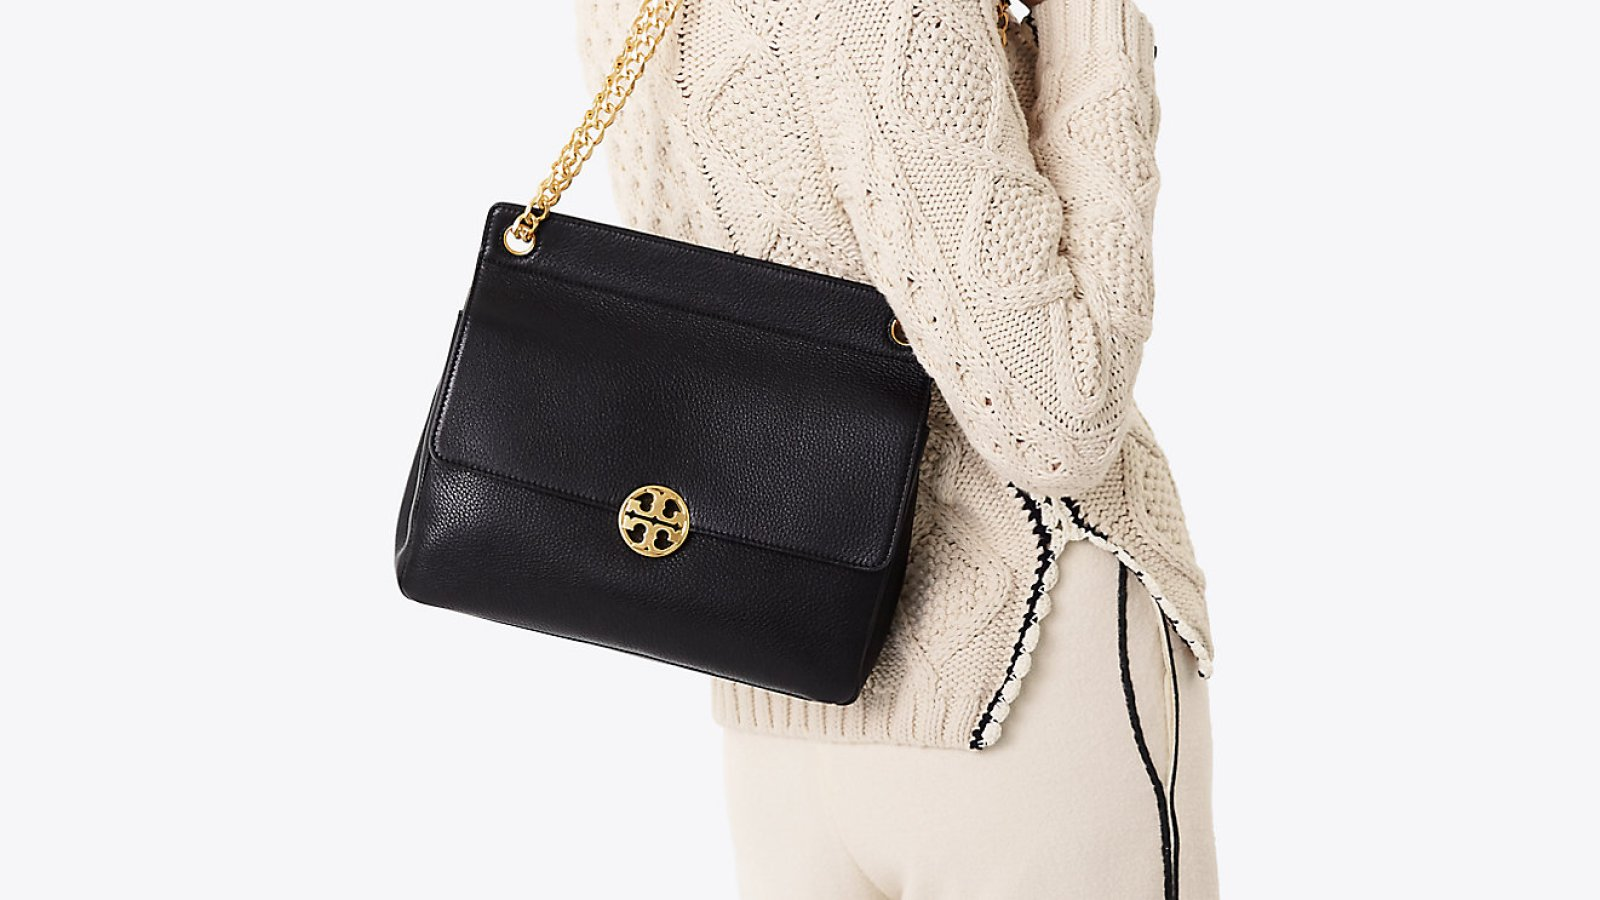 1f840769aa0 Nordstrom Can Barely Keep This Tory Burch Bag in Stock